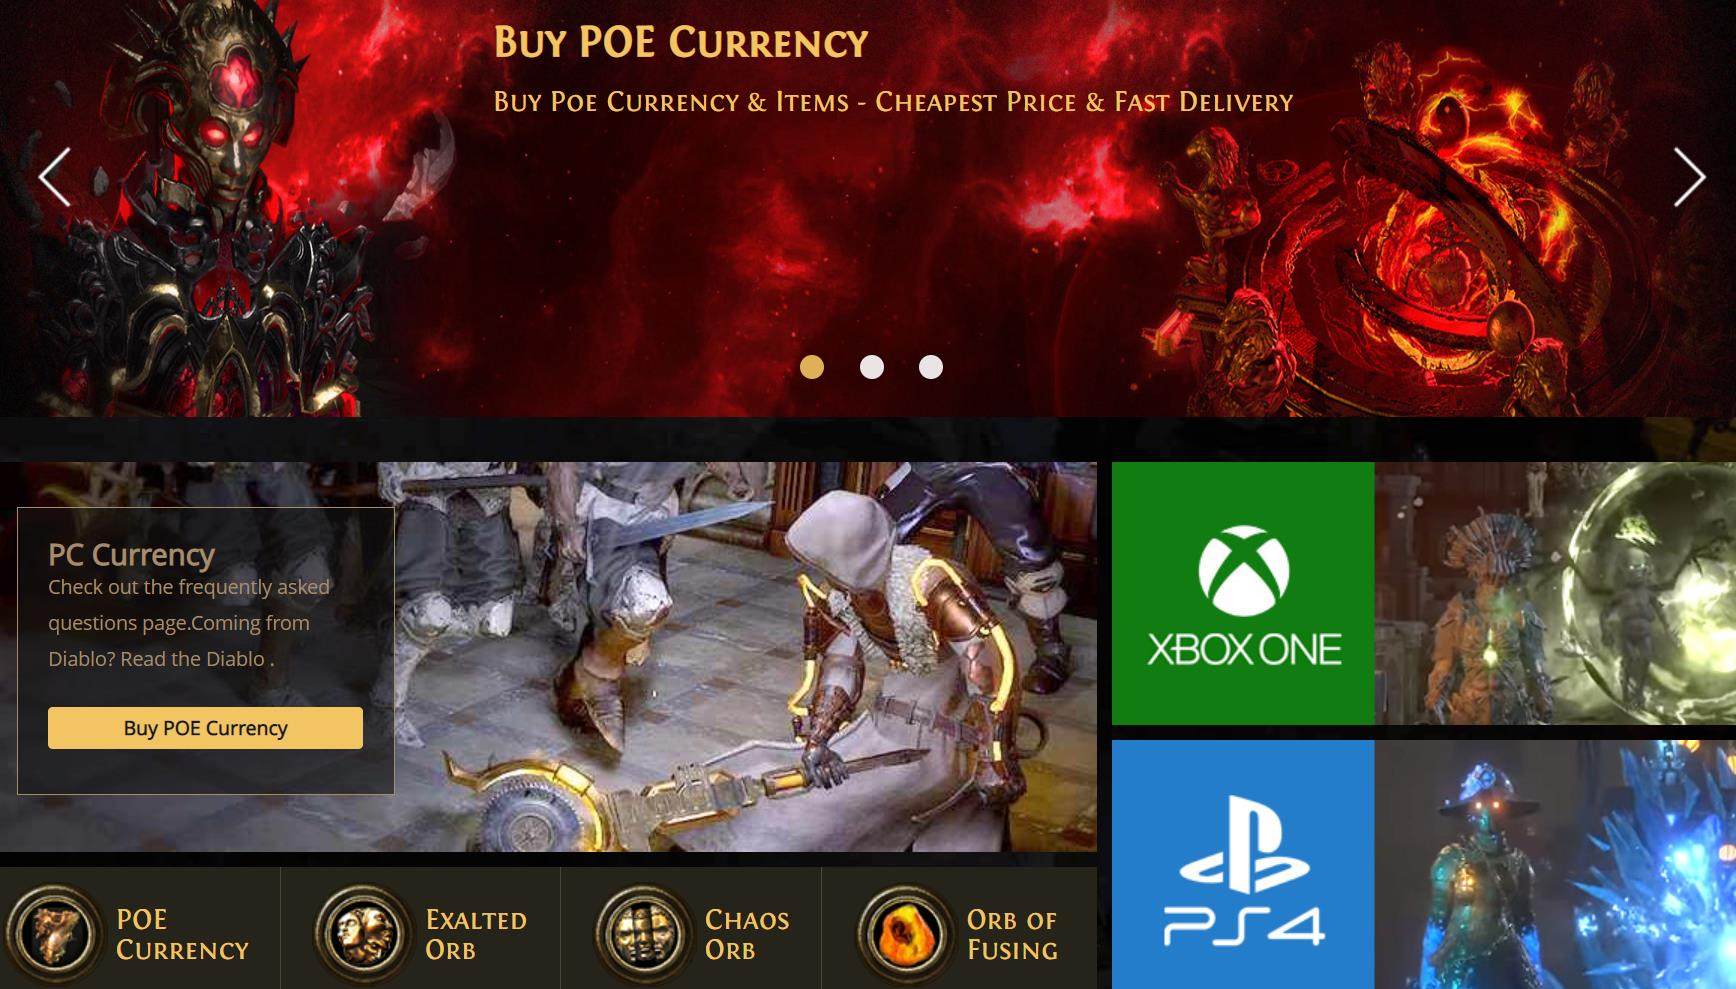 How we get the POE Currency and POE Items